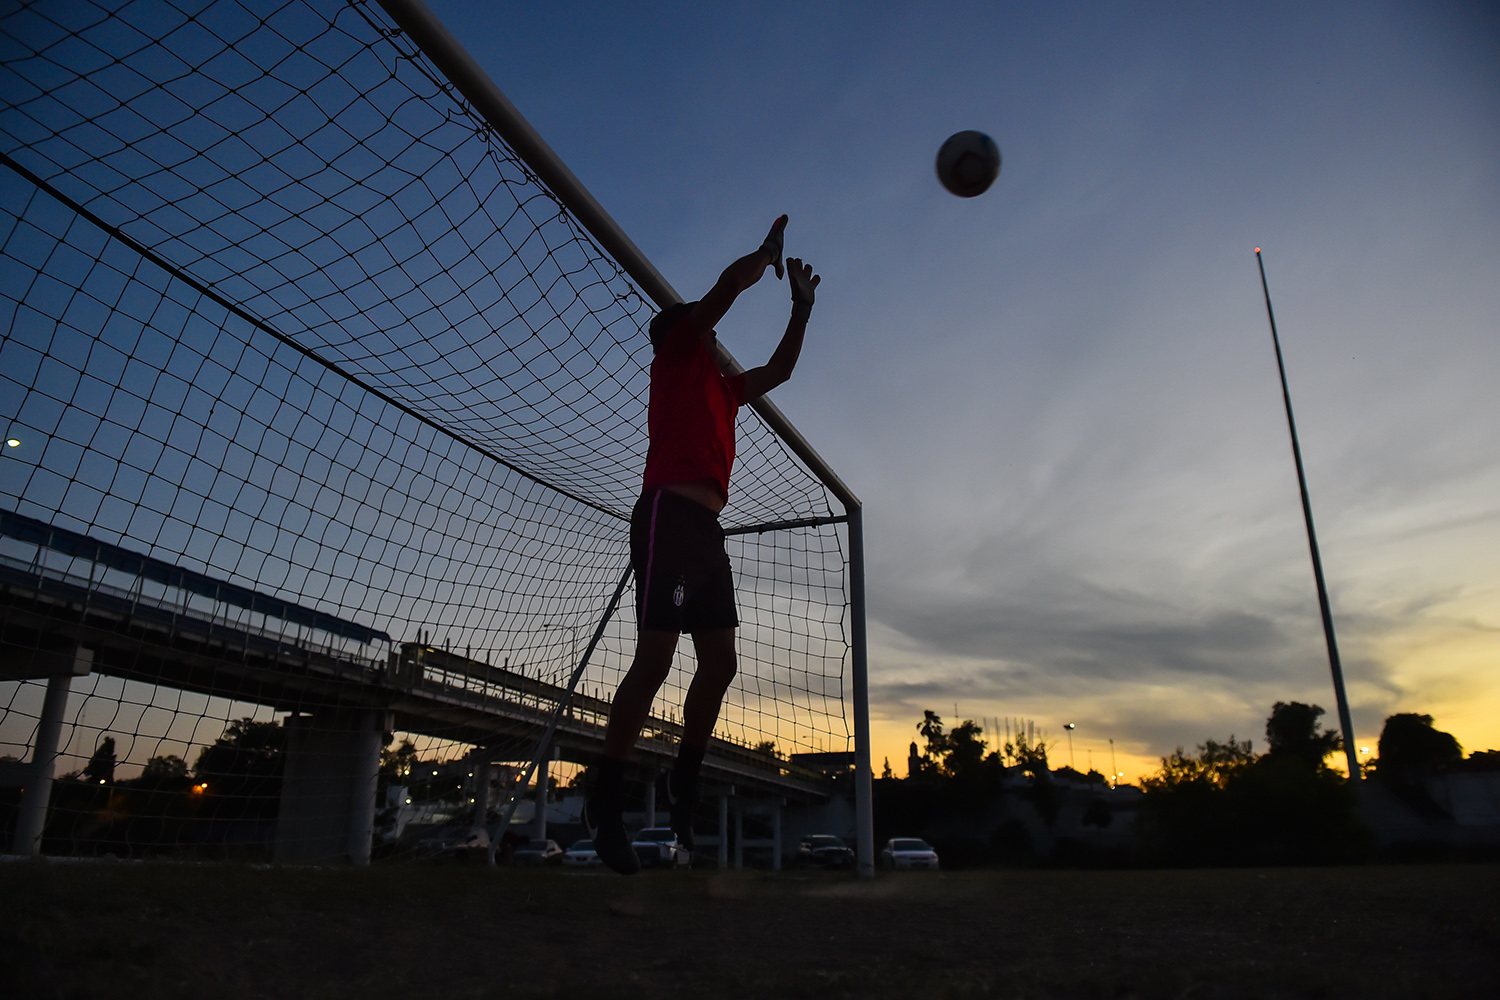 Members of the Twin Cities FC practice at twilight on an Eagle Pass soccer field between the Rio Grande and the current border fence. Piedras Negras, Mexico, is in the background.